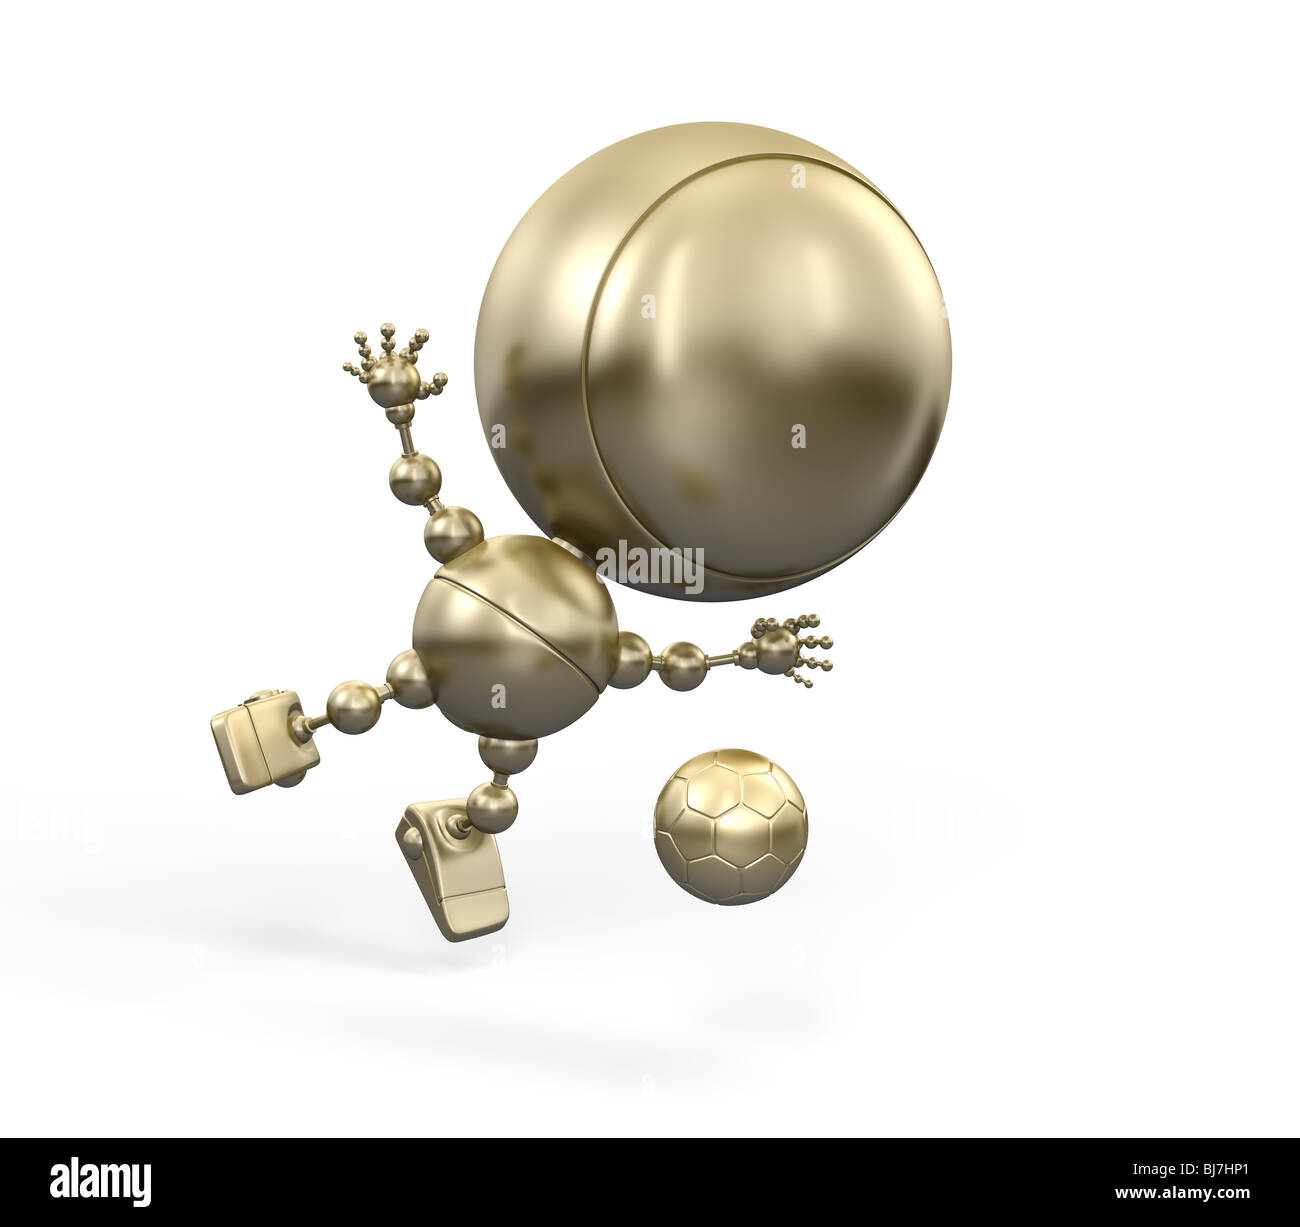 Golden Footballer in air kicks the ball. Gold figurine of football player - Stock Image